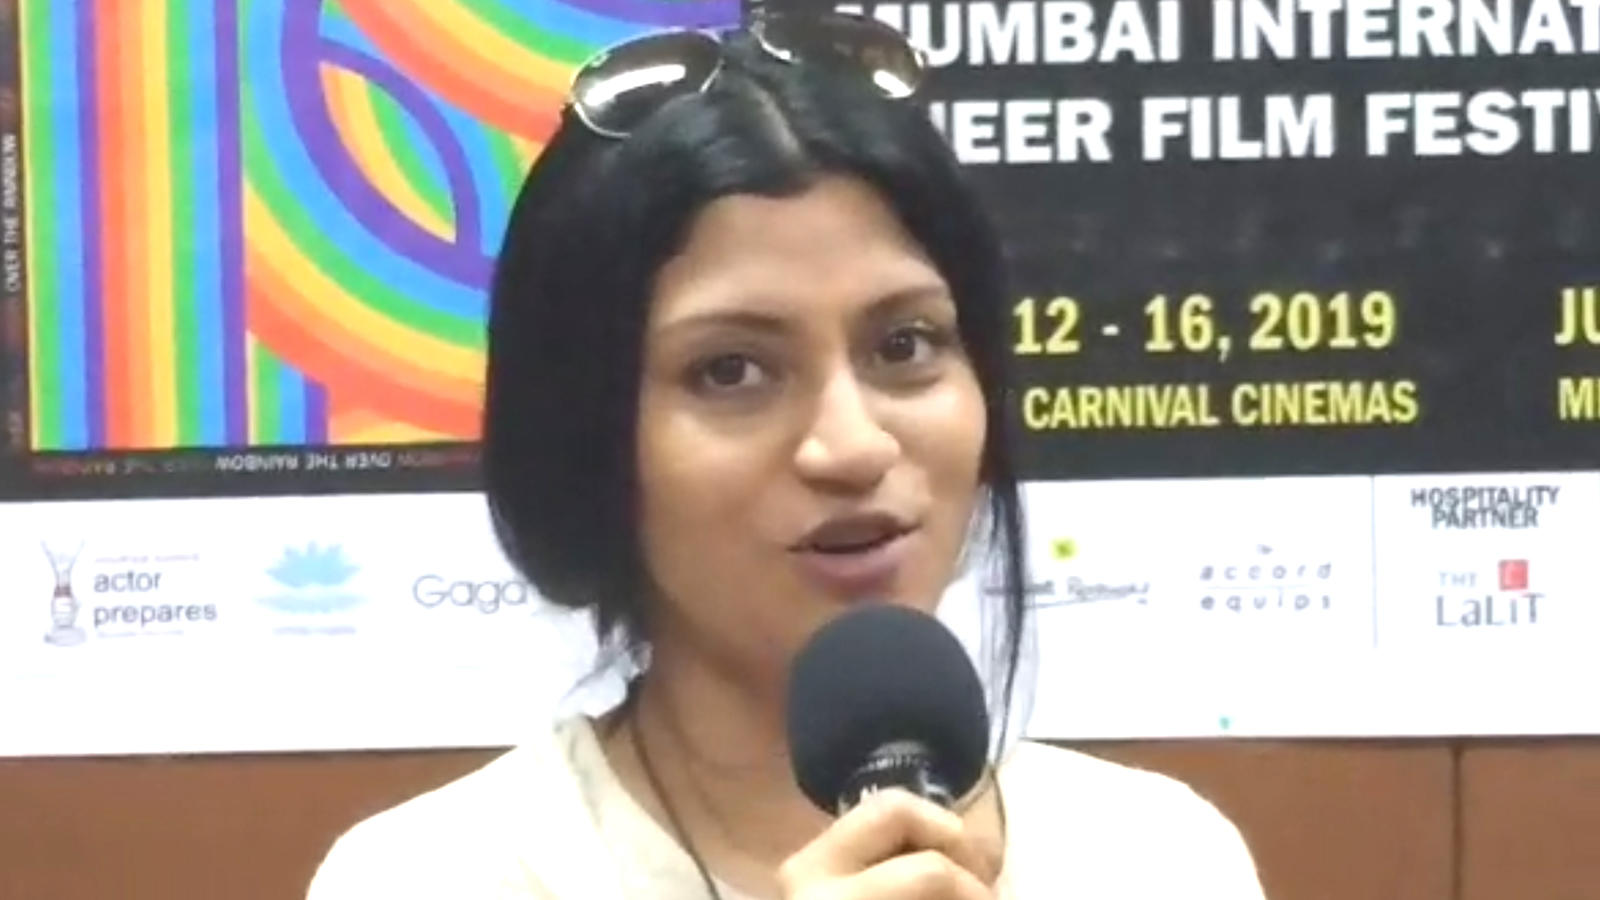 Stories from the queer world should be a part of the movie industry, feels Konkona Sen Sharma